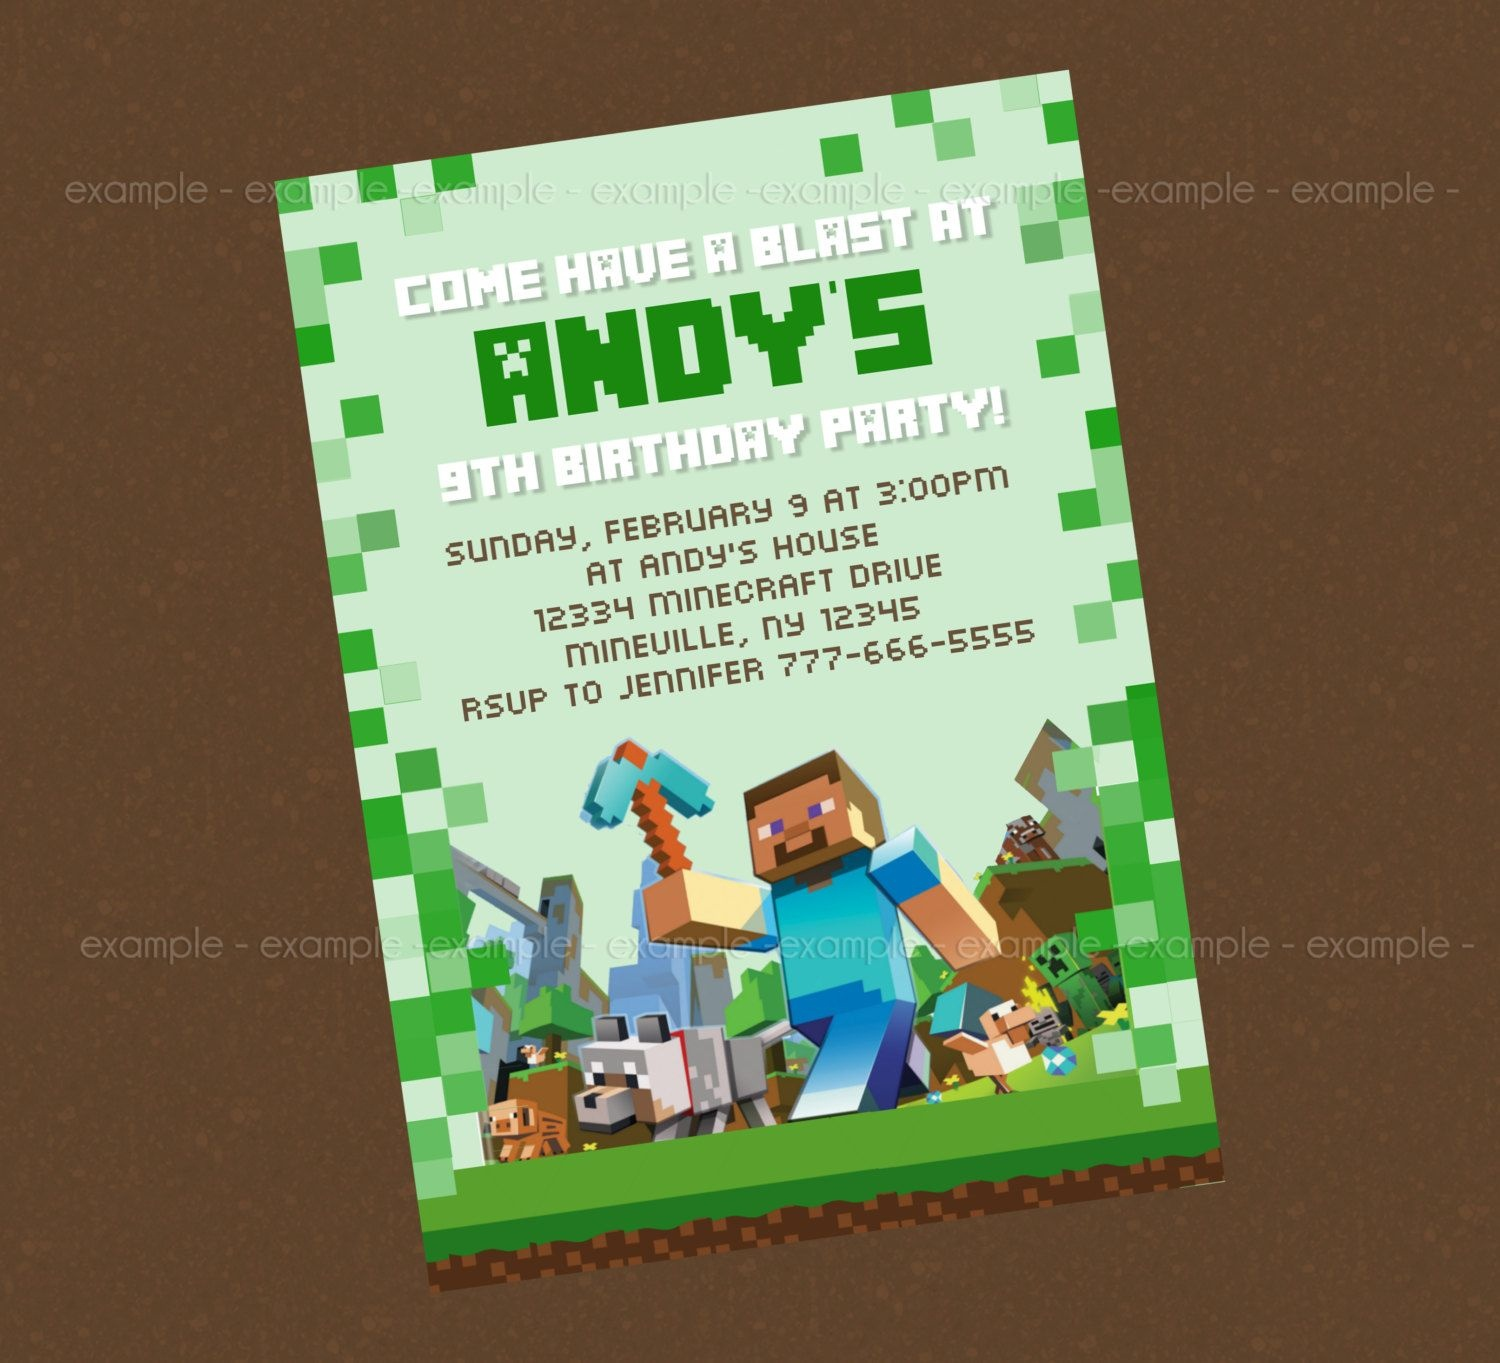 Minecraft Birthday Party Invitation Templates - Invitation Templates - Free Printable Minecraft Birthday Party Invitations Templates